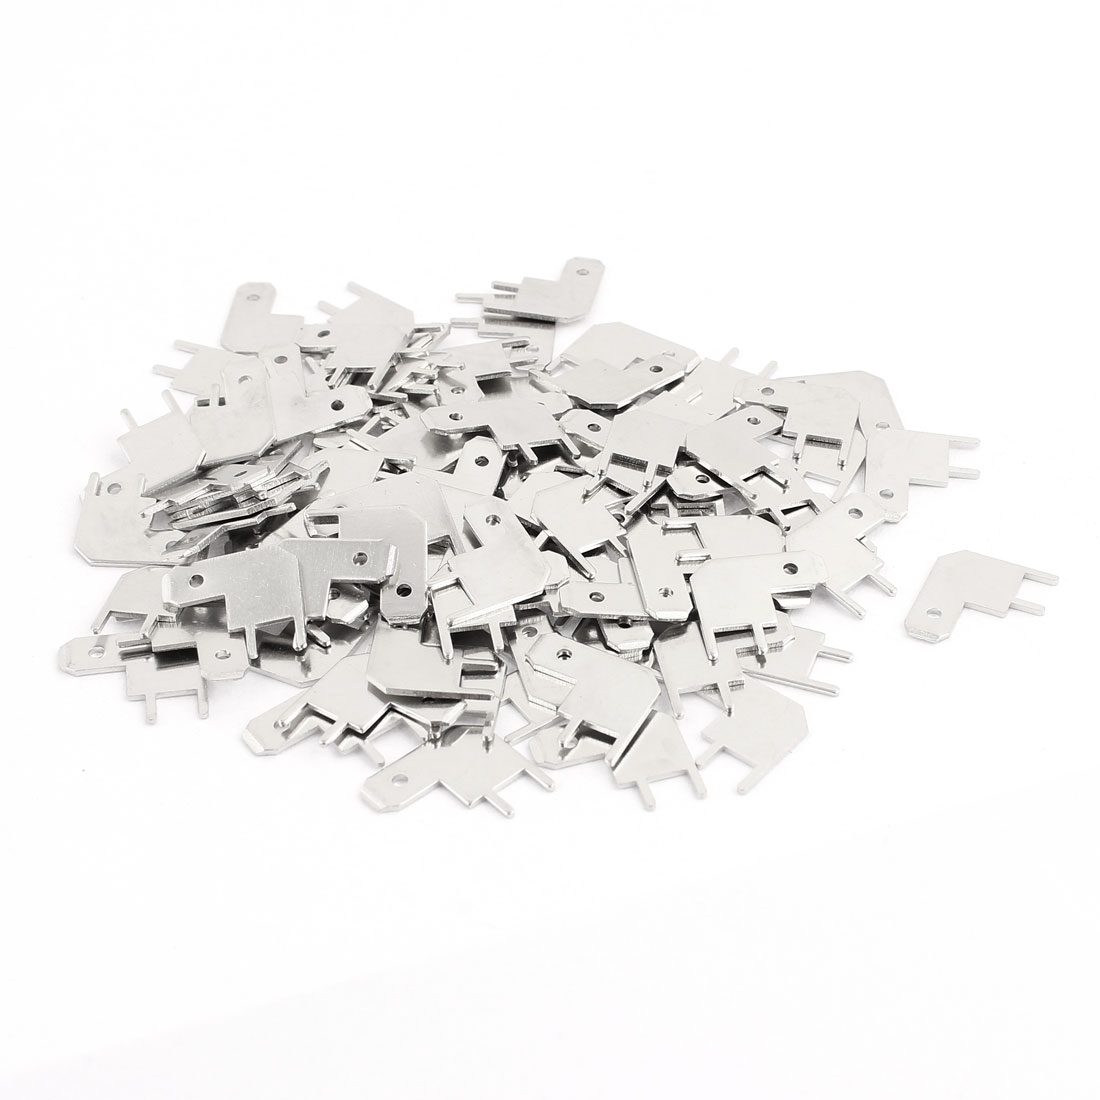 100 Pcs 4.8 L Shape Lug Plate Solder Terminal Connector Crimp Silver Tone